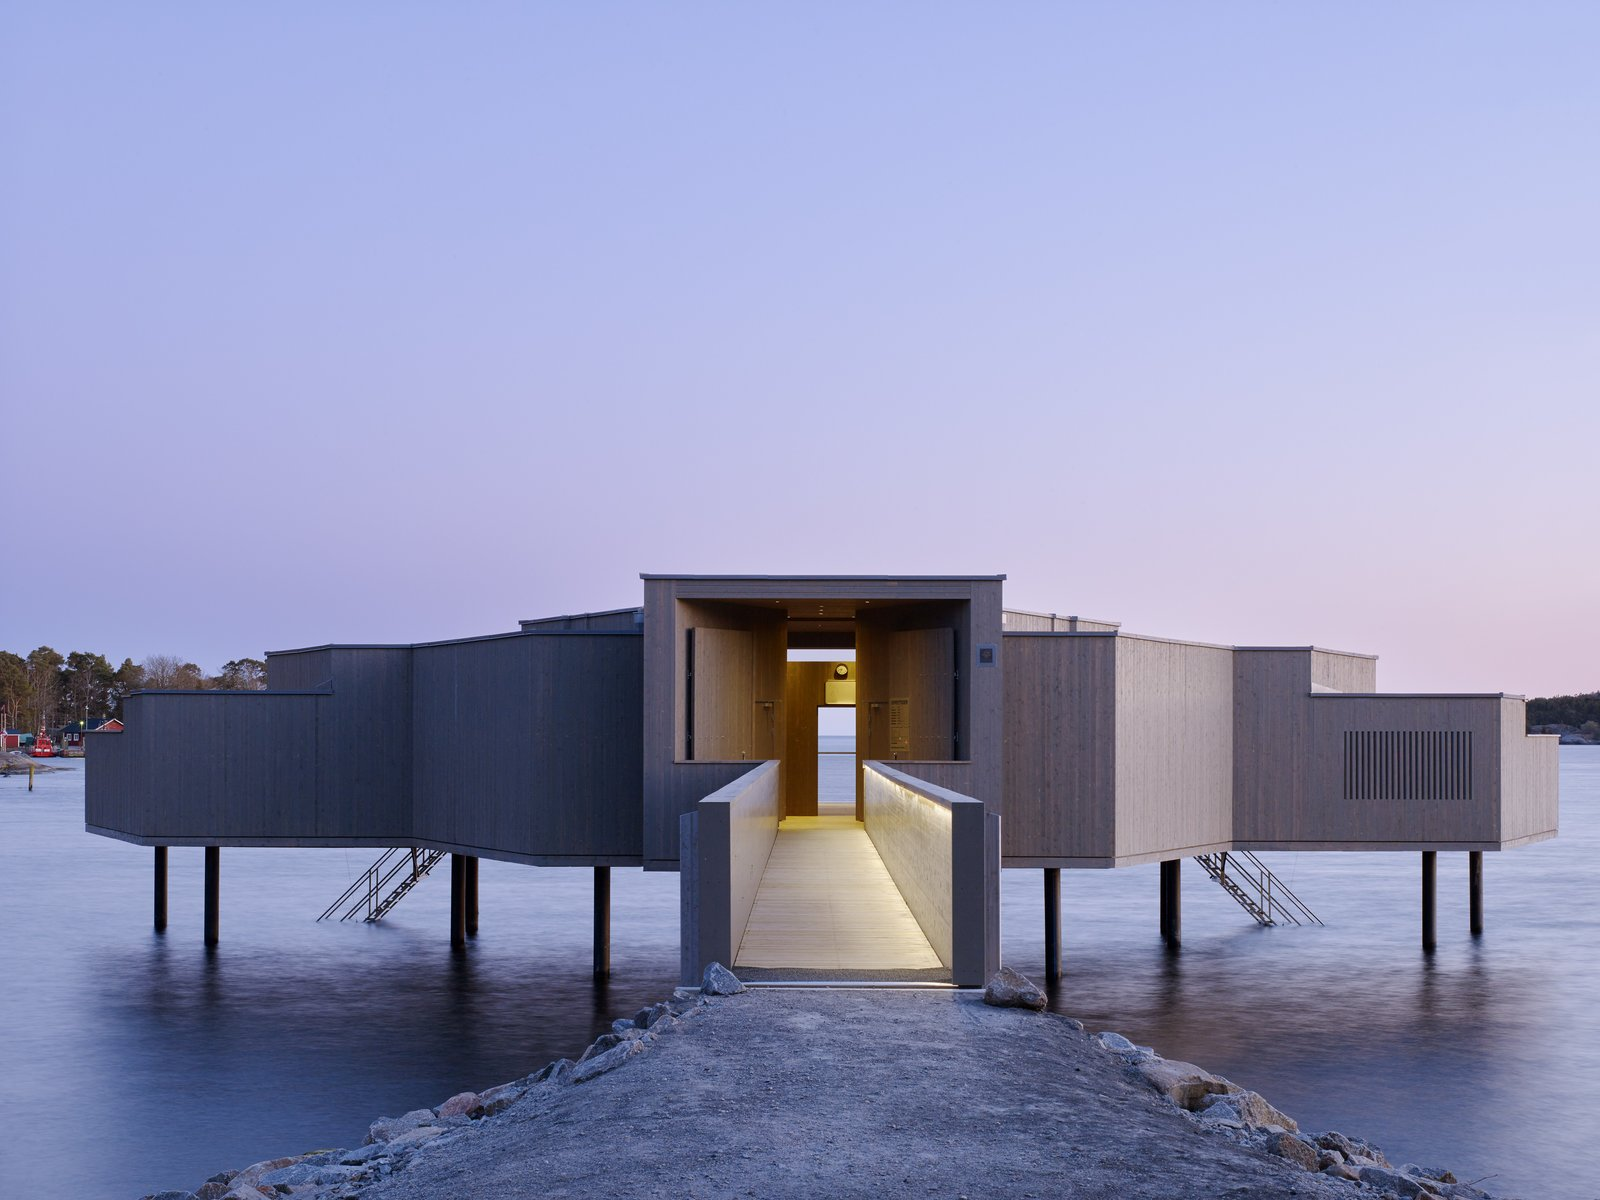 Photo 1 of 6 in A Swedish Coastal Town Commissions an Otherworldly Bathhouse